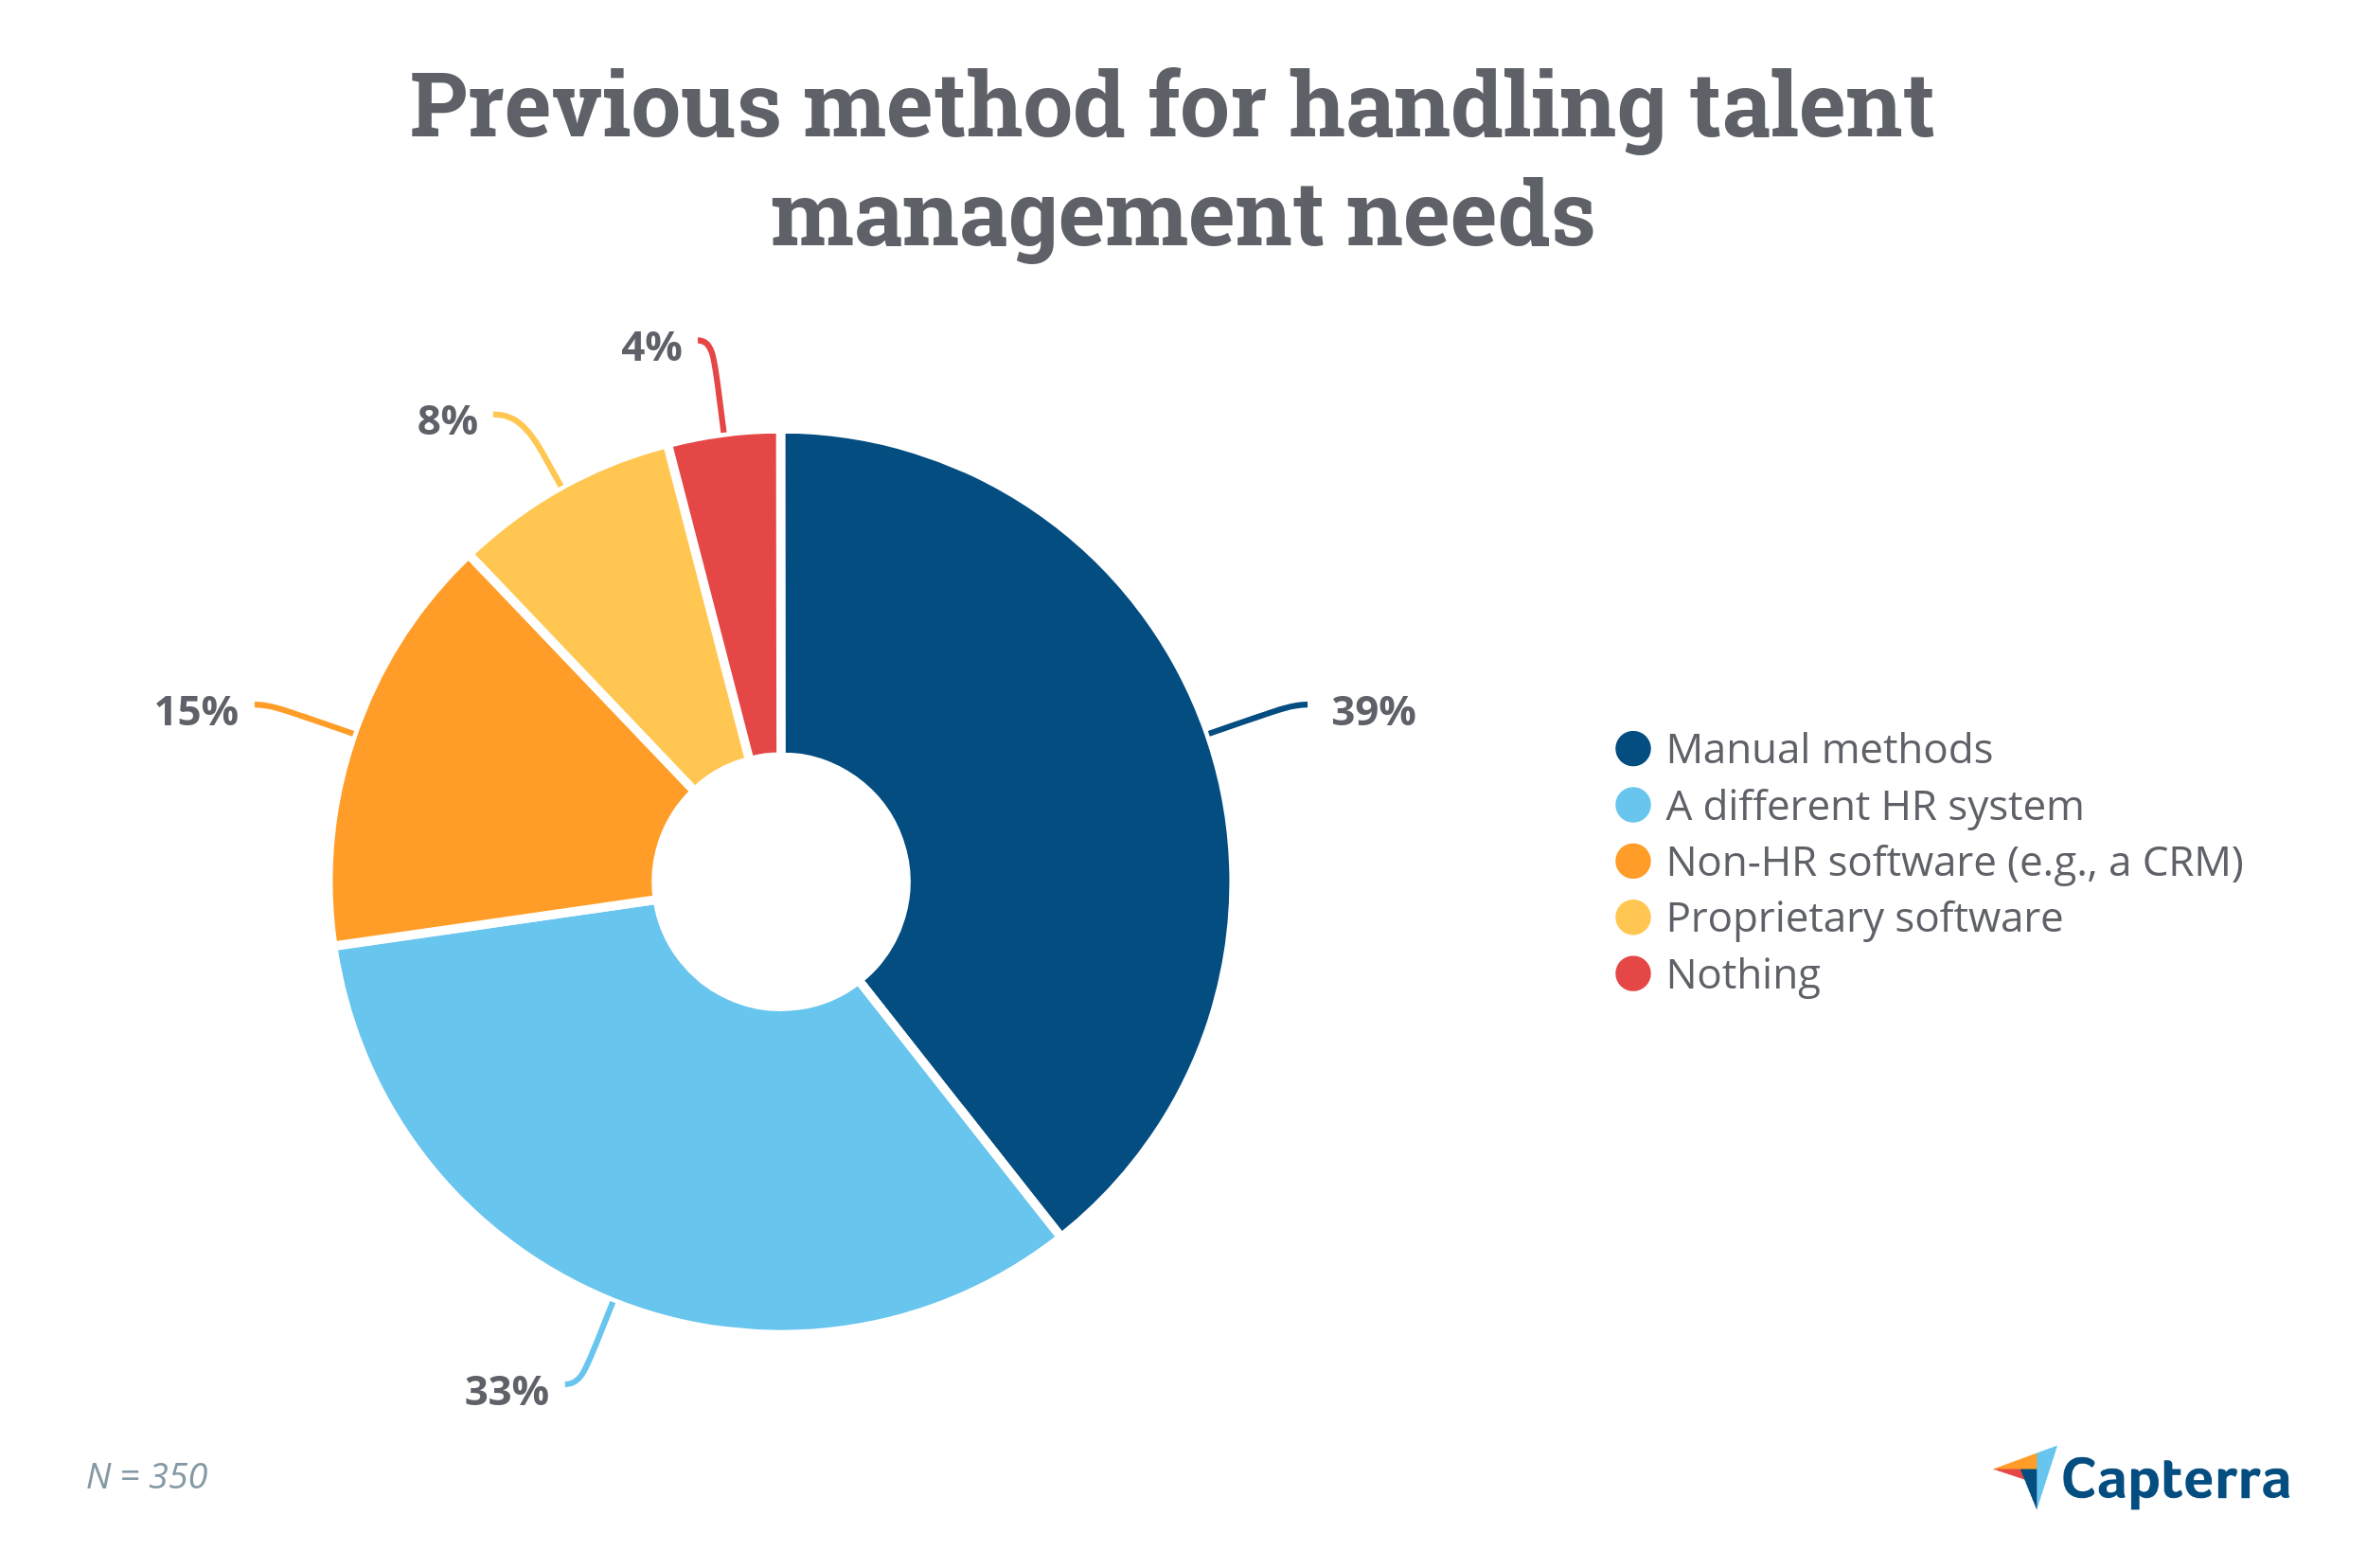 Previous method for handling talent management needs